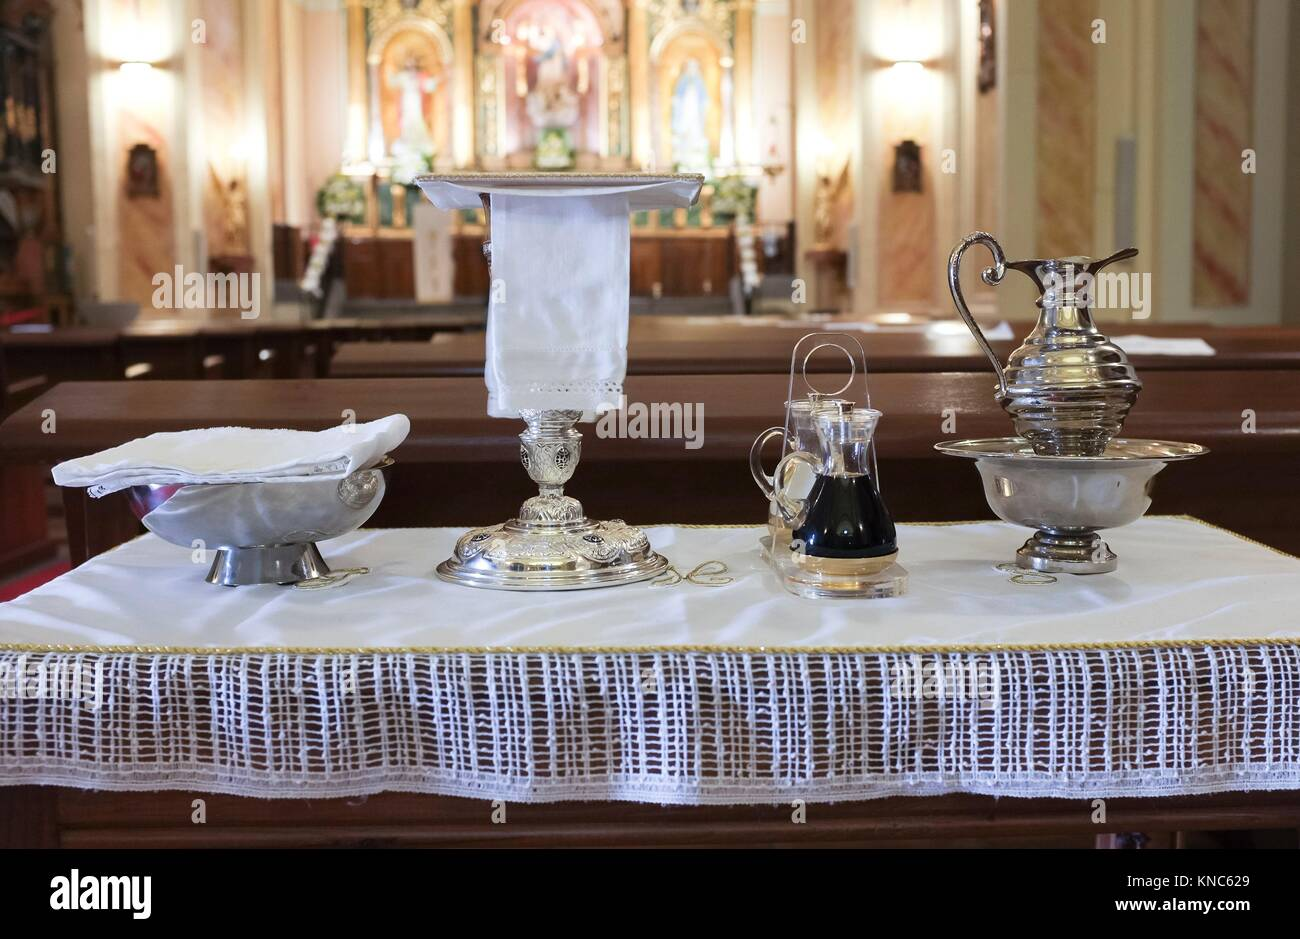 Catholic liturgical objects displayed over table at church. Chalice, communion wafers, wine, water, ewer and basin. Stock Photo